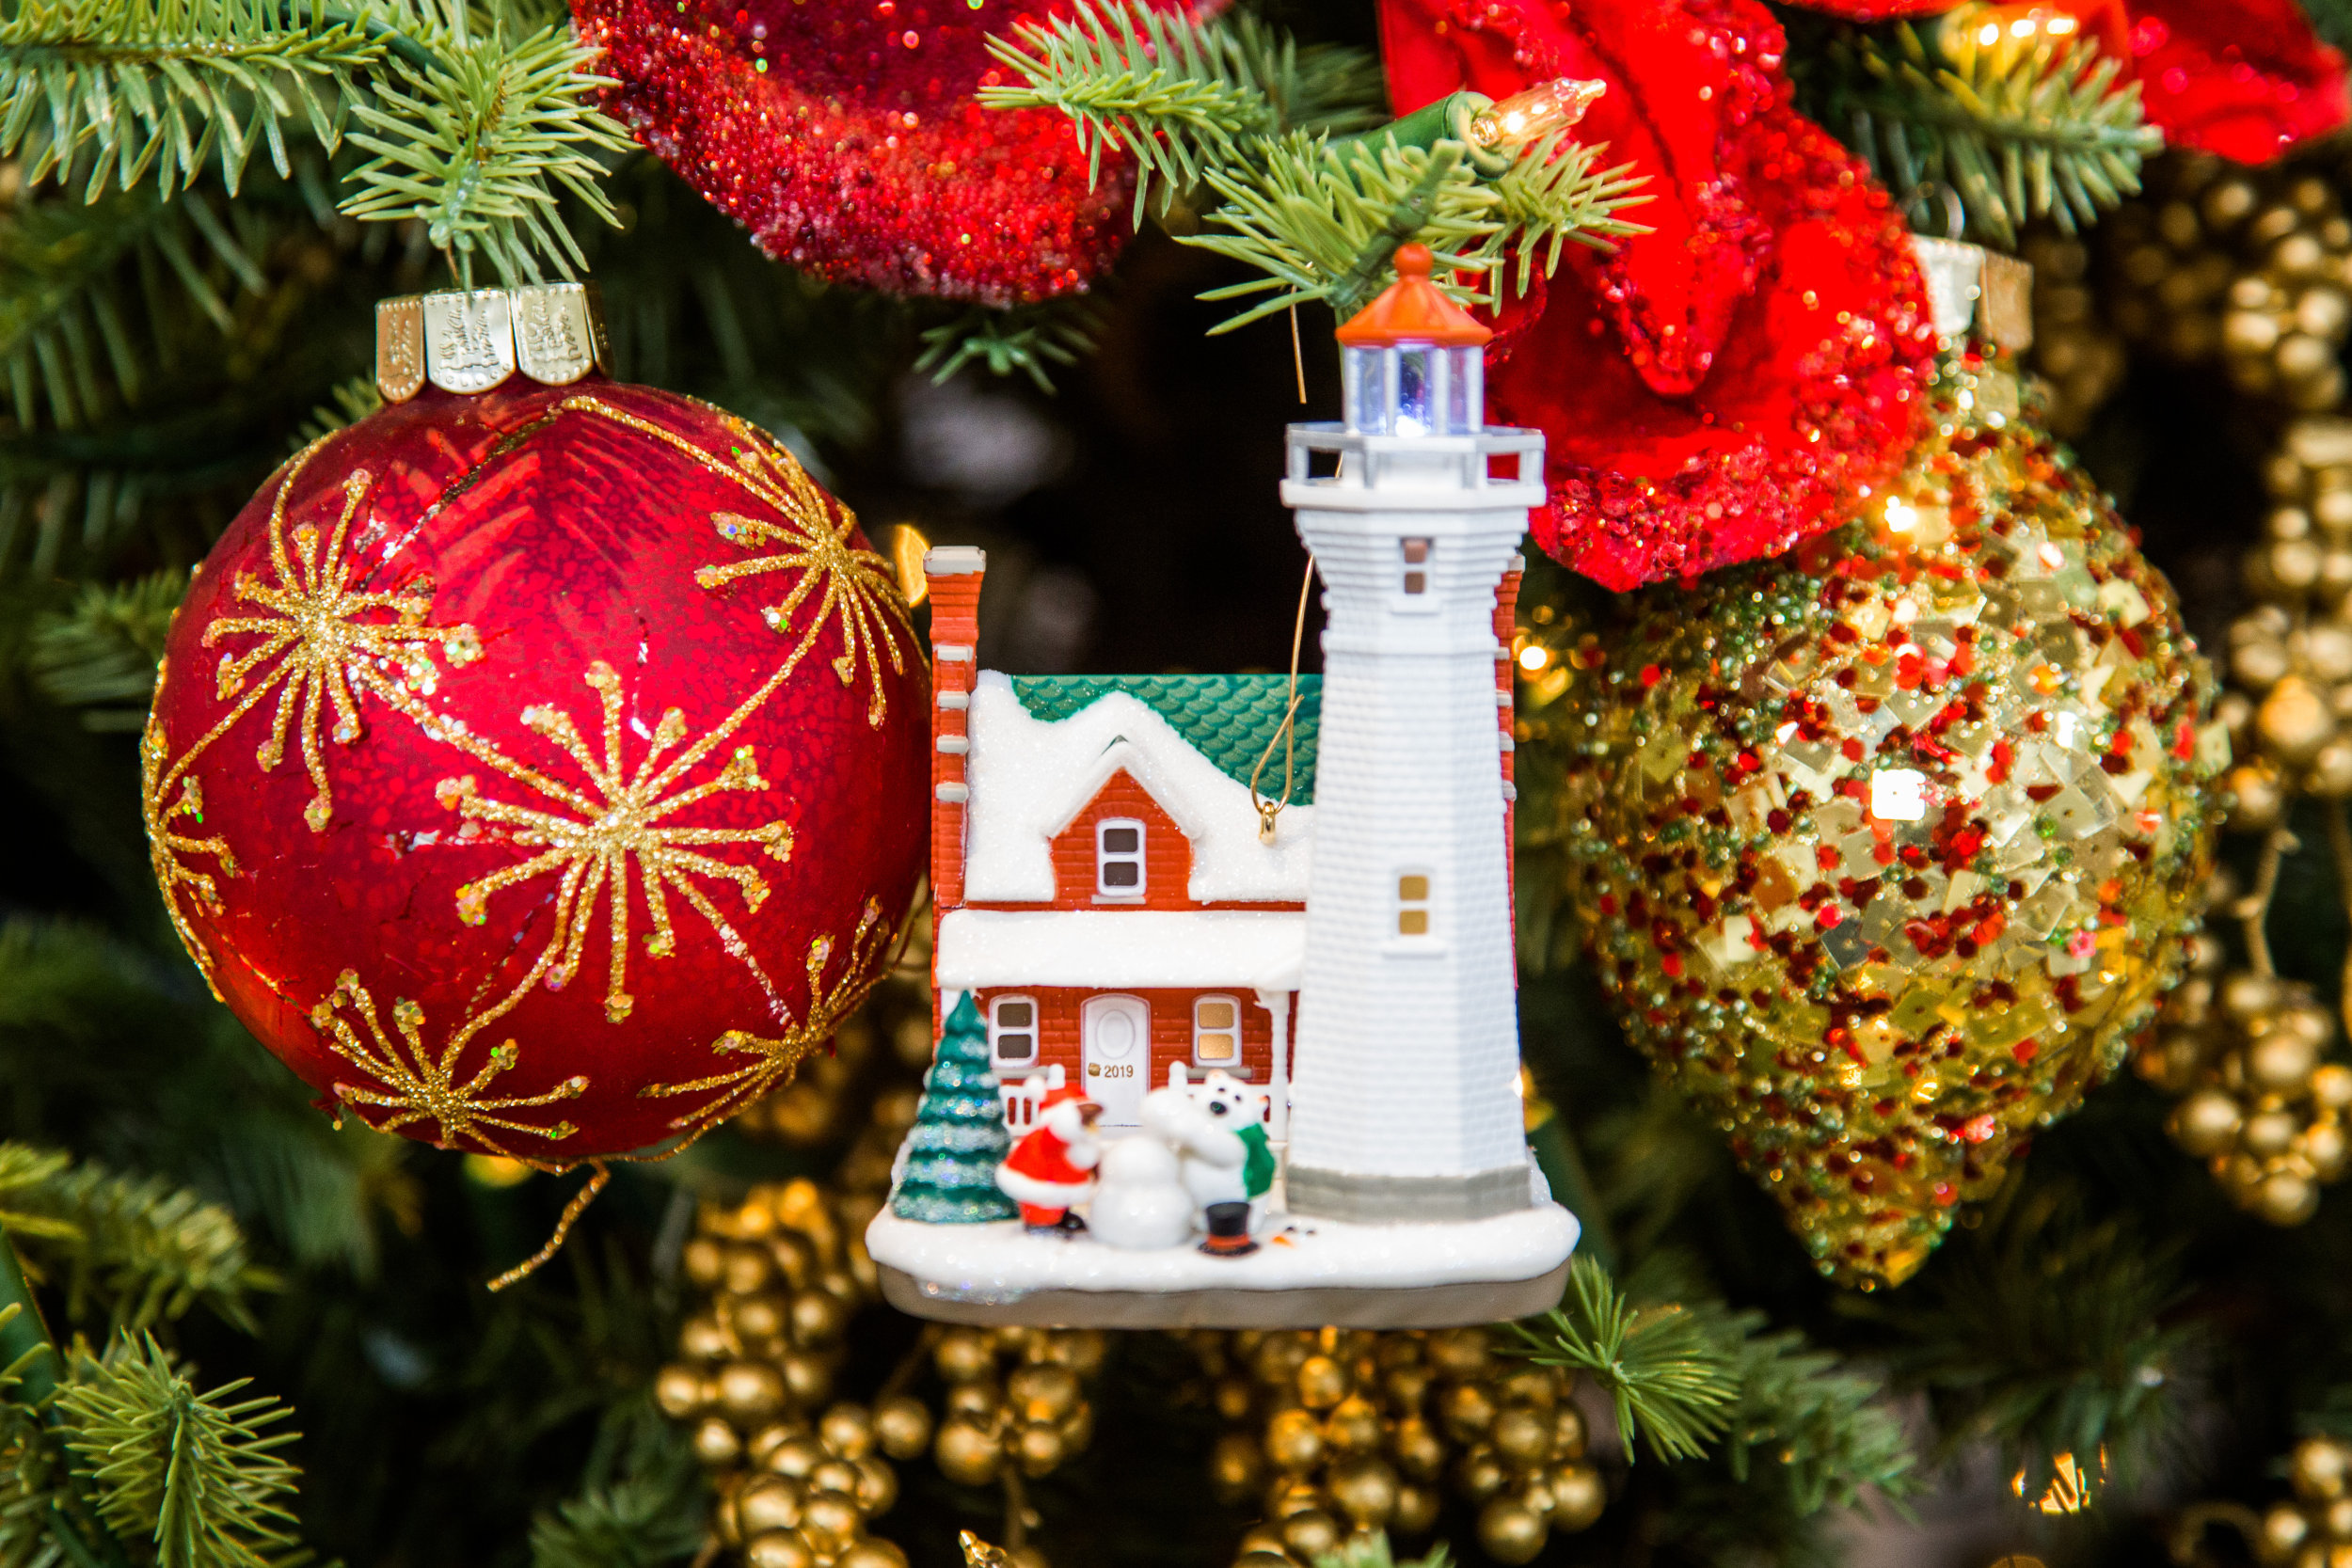 Hallmark Christmas In July 2019 Ornaments.Keepsake Ornament Giveaway Holiday Lighthouse Home